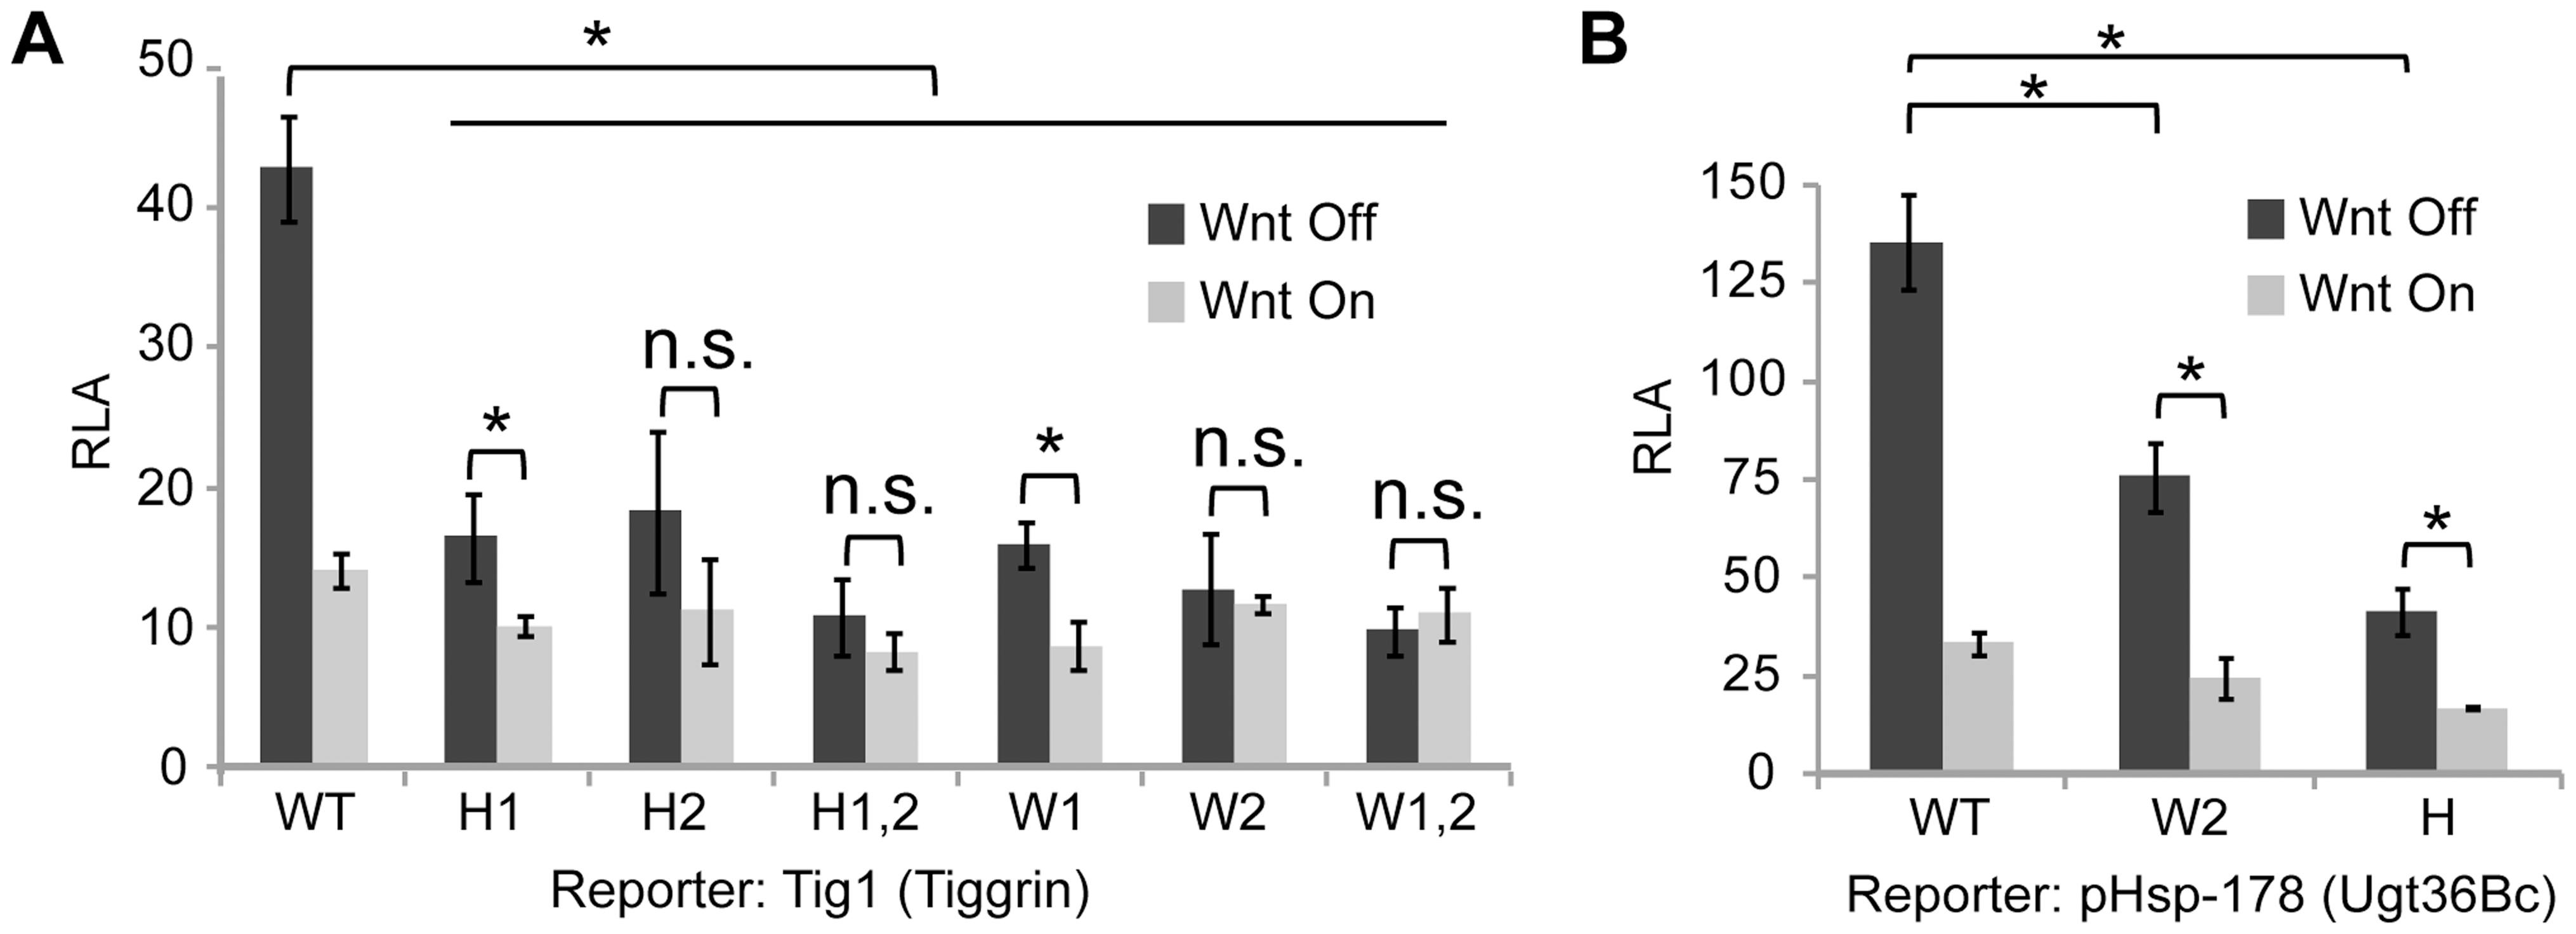 r-Helper and WGAWAW sites are required for Wnt-regulation of <i>Tig</i> and <i>Ugt36Bc</i> W-CRM reporters.